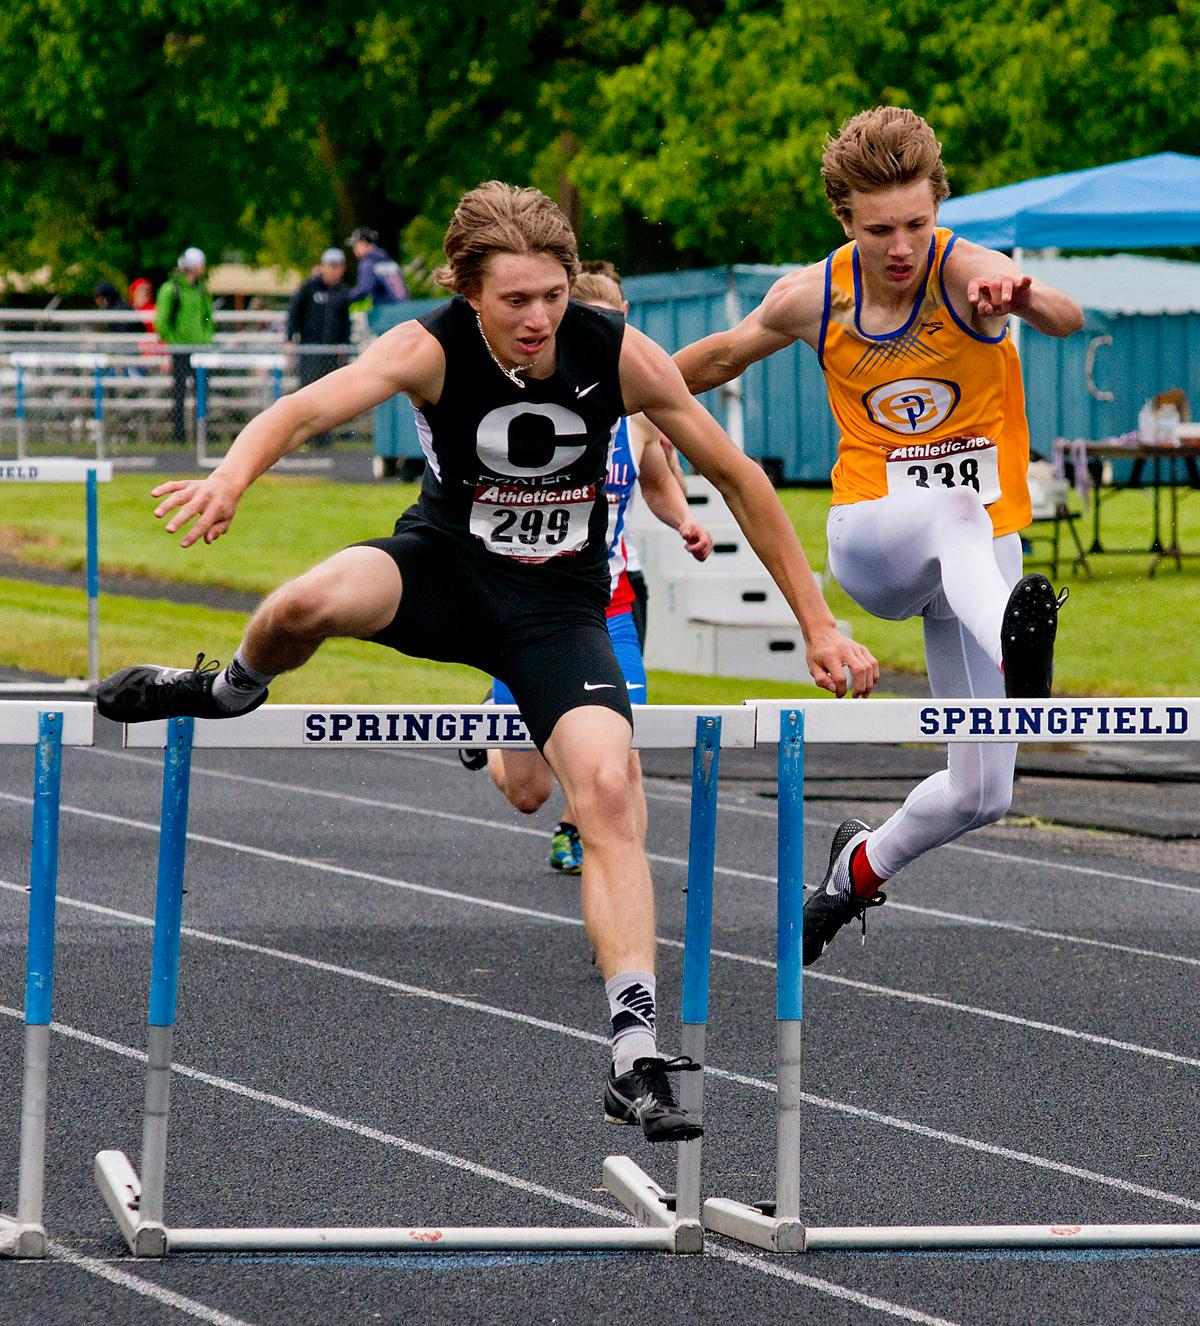 Cal Duke from Crater wins the 300 meter hurdles with a time of 40.70 at the 5A-3 Midwestern League District Track Meet. Photo by Dan Morrison, Oregon News Lab